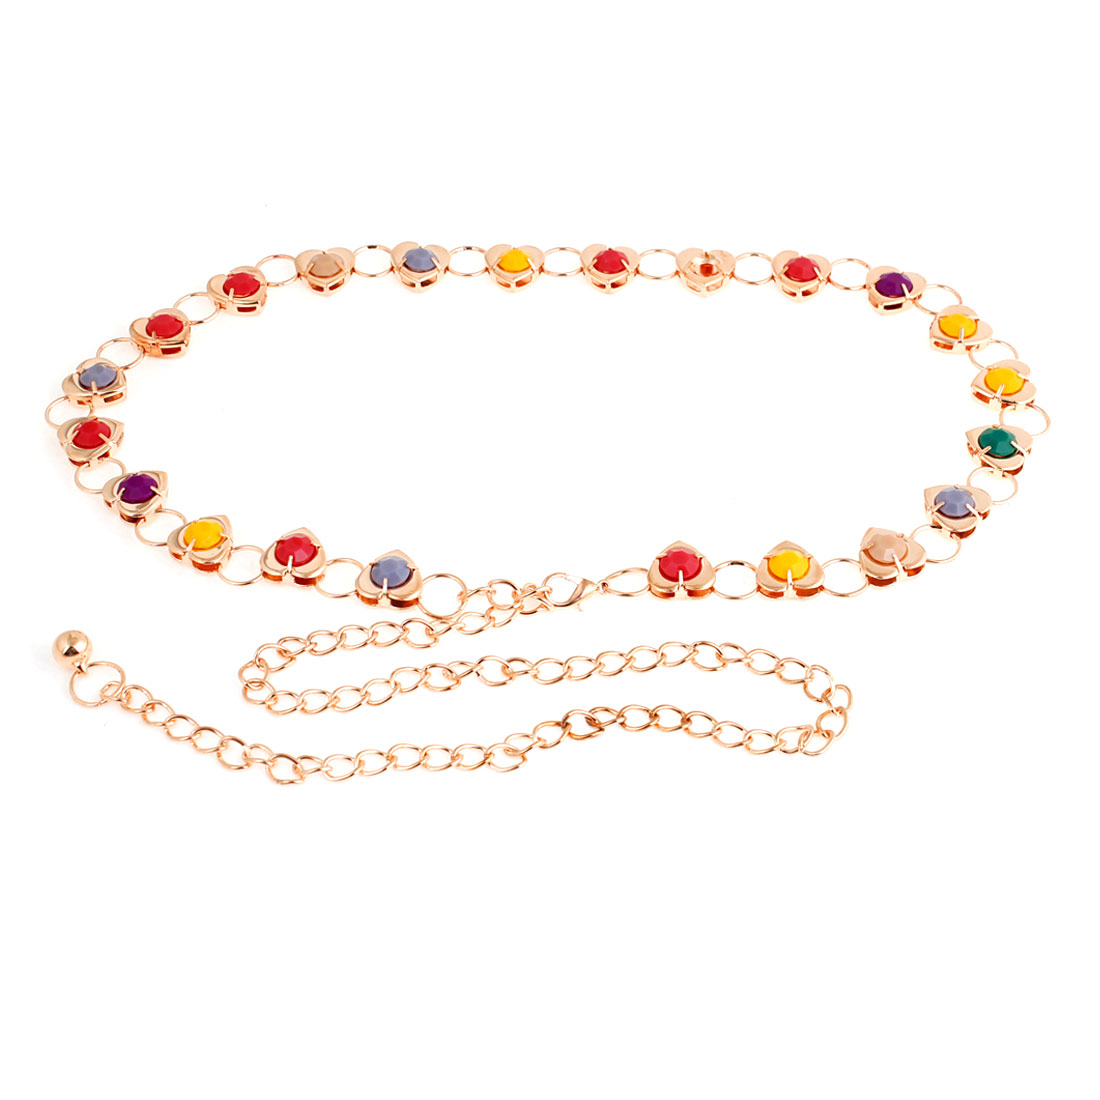 Ladies Multicolor Beads Accent Metallic Heart Shaped Waist Chain Gold Tone